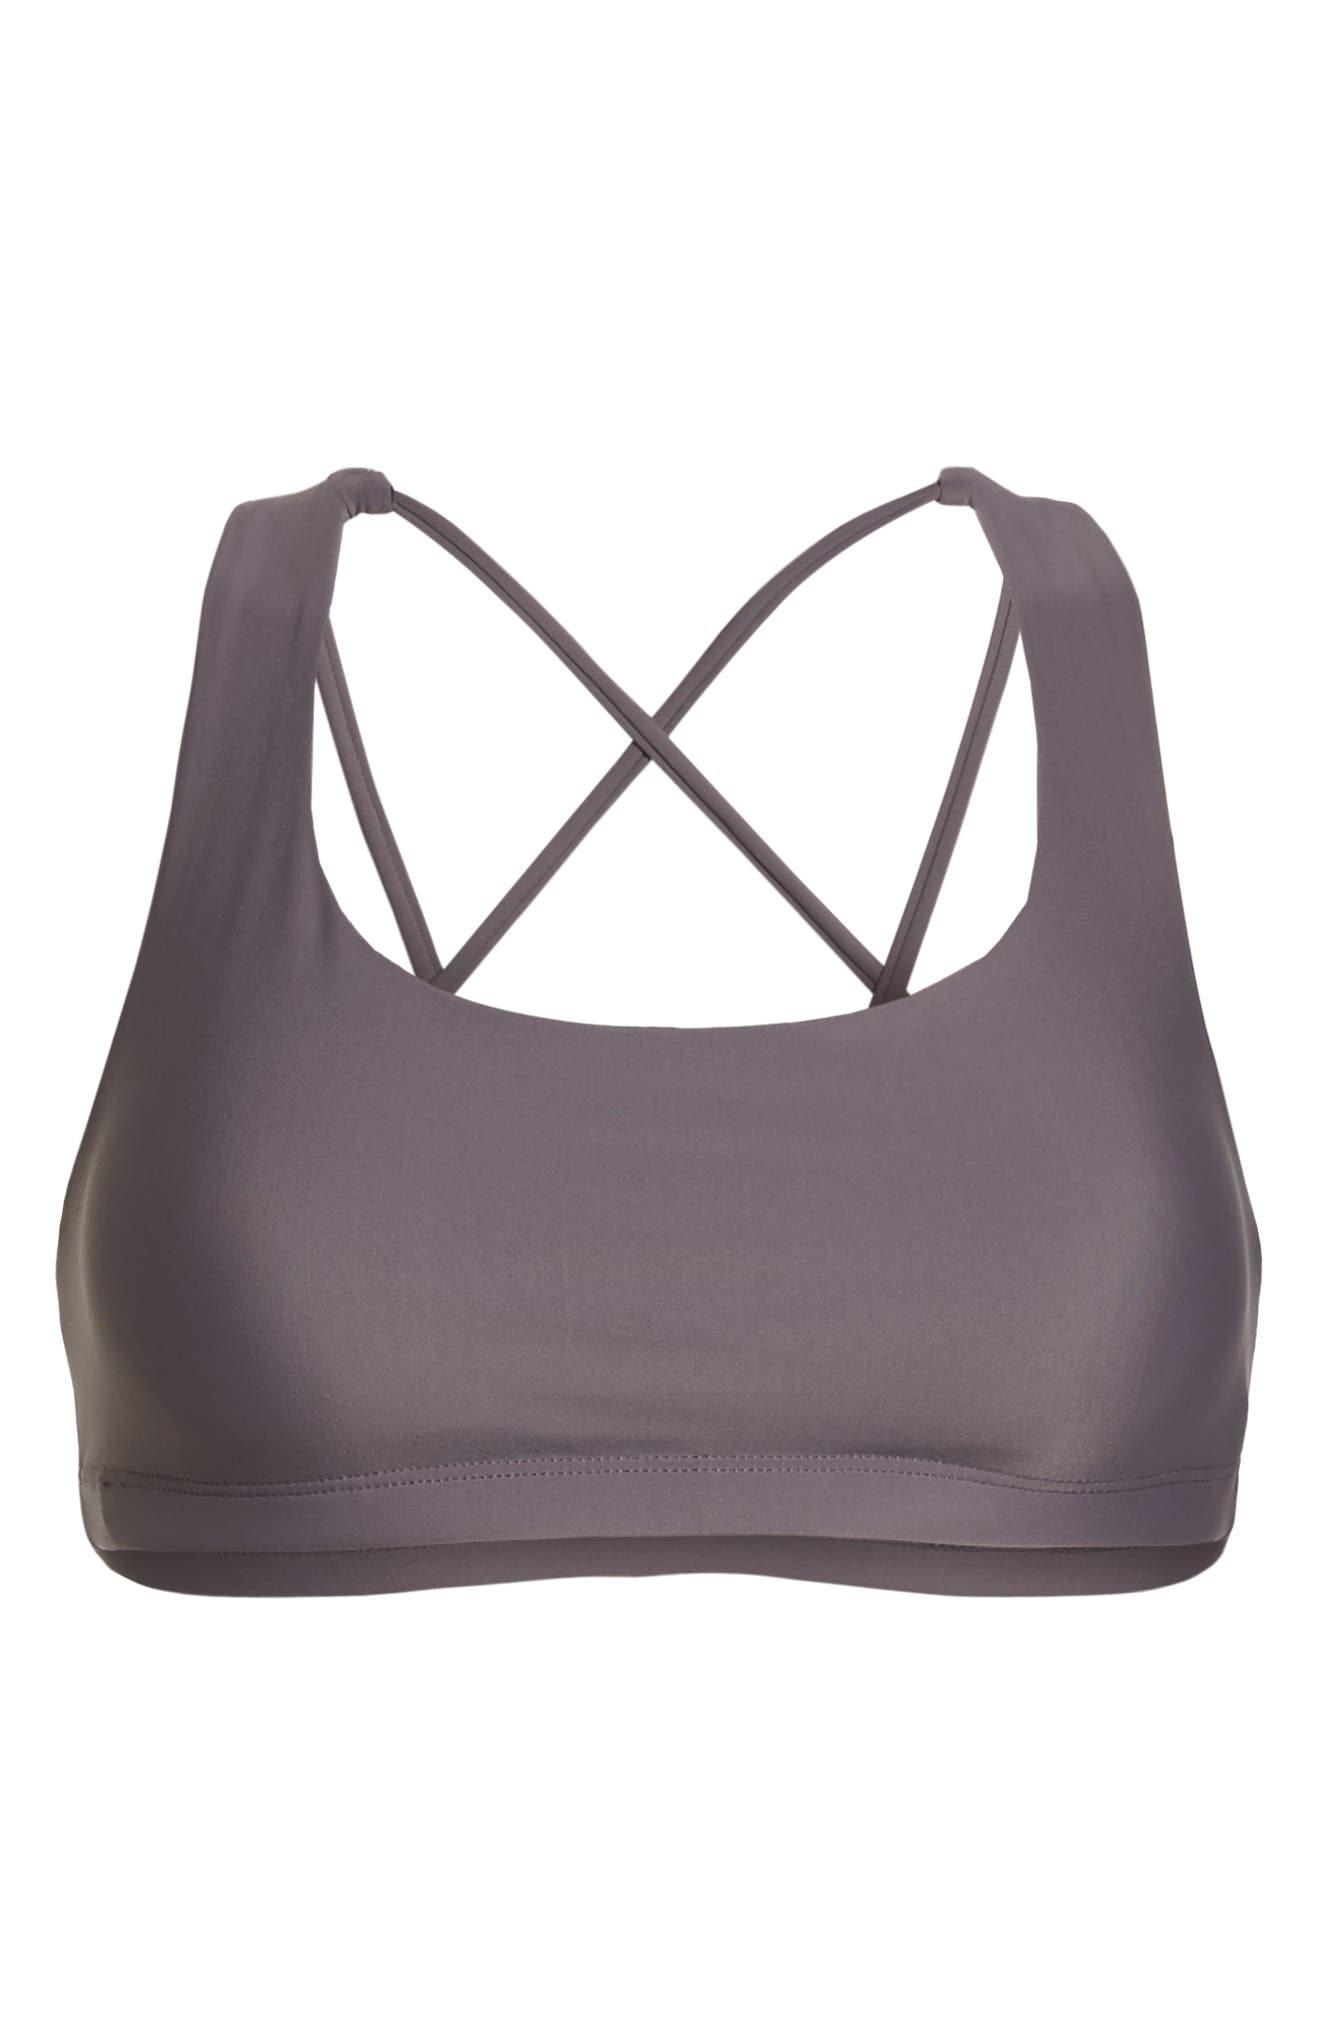 Mudra Bra,                             Alternate thumbnail 7, color,                             054